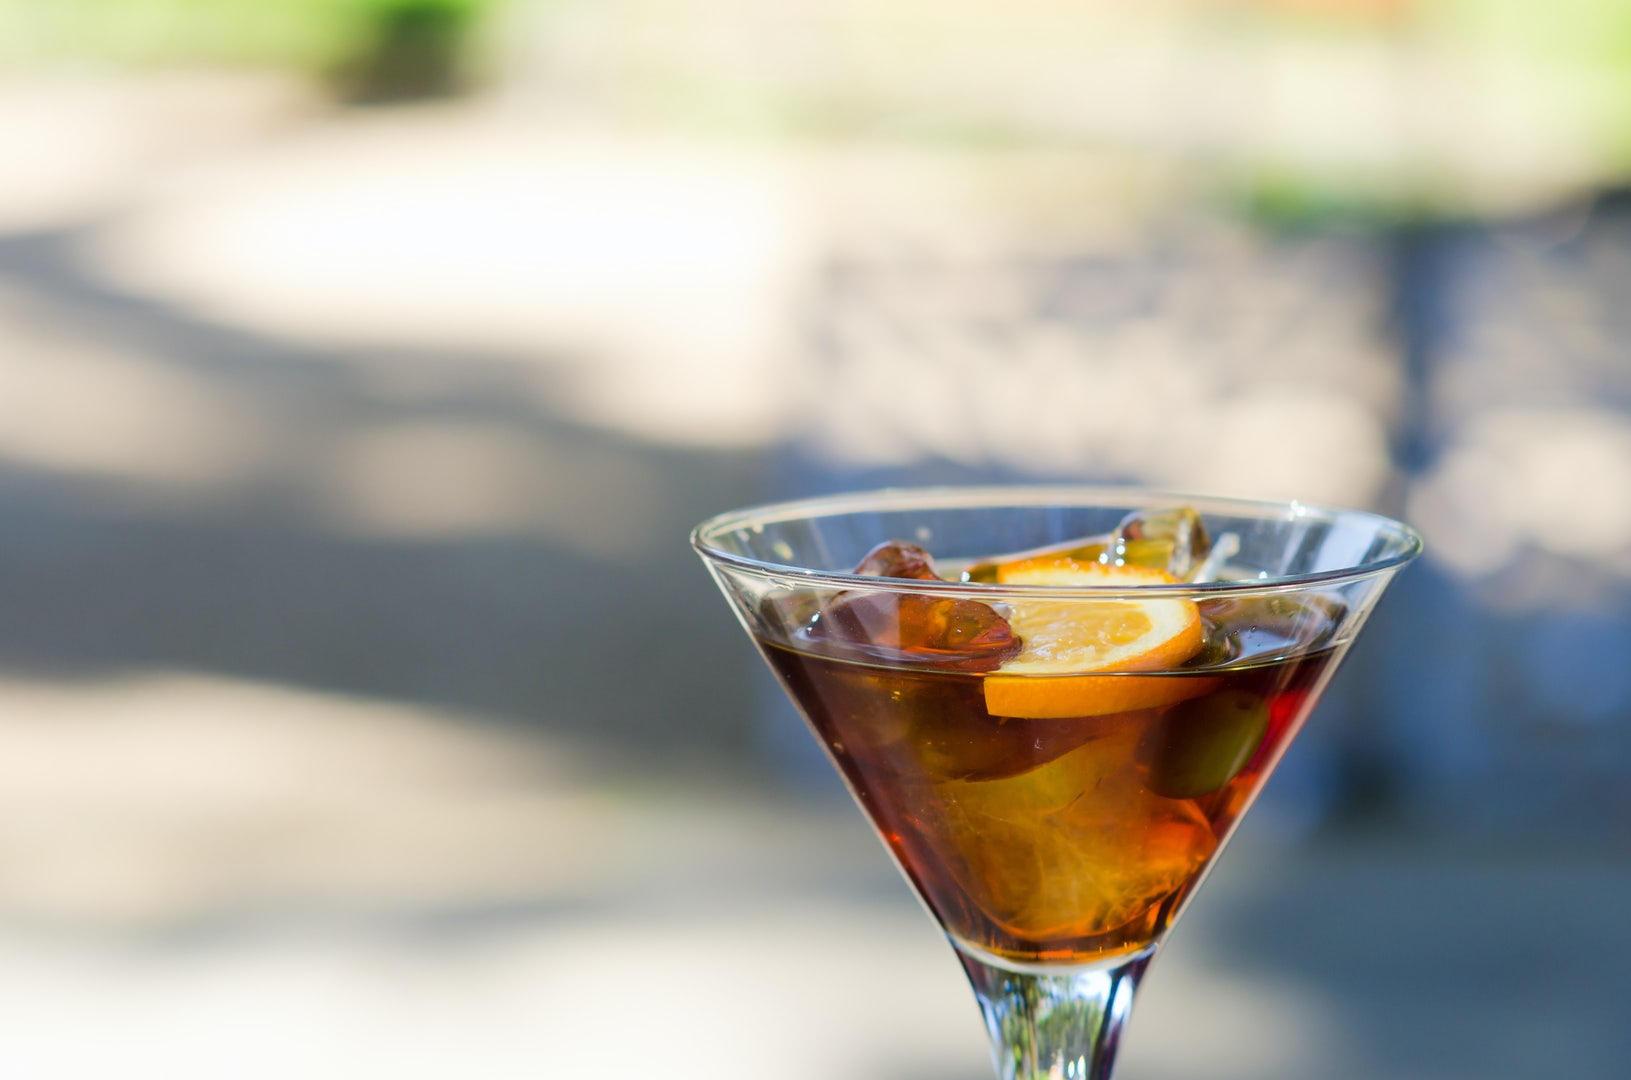 a glass of Vermut